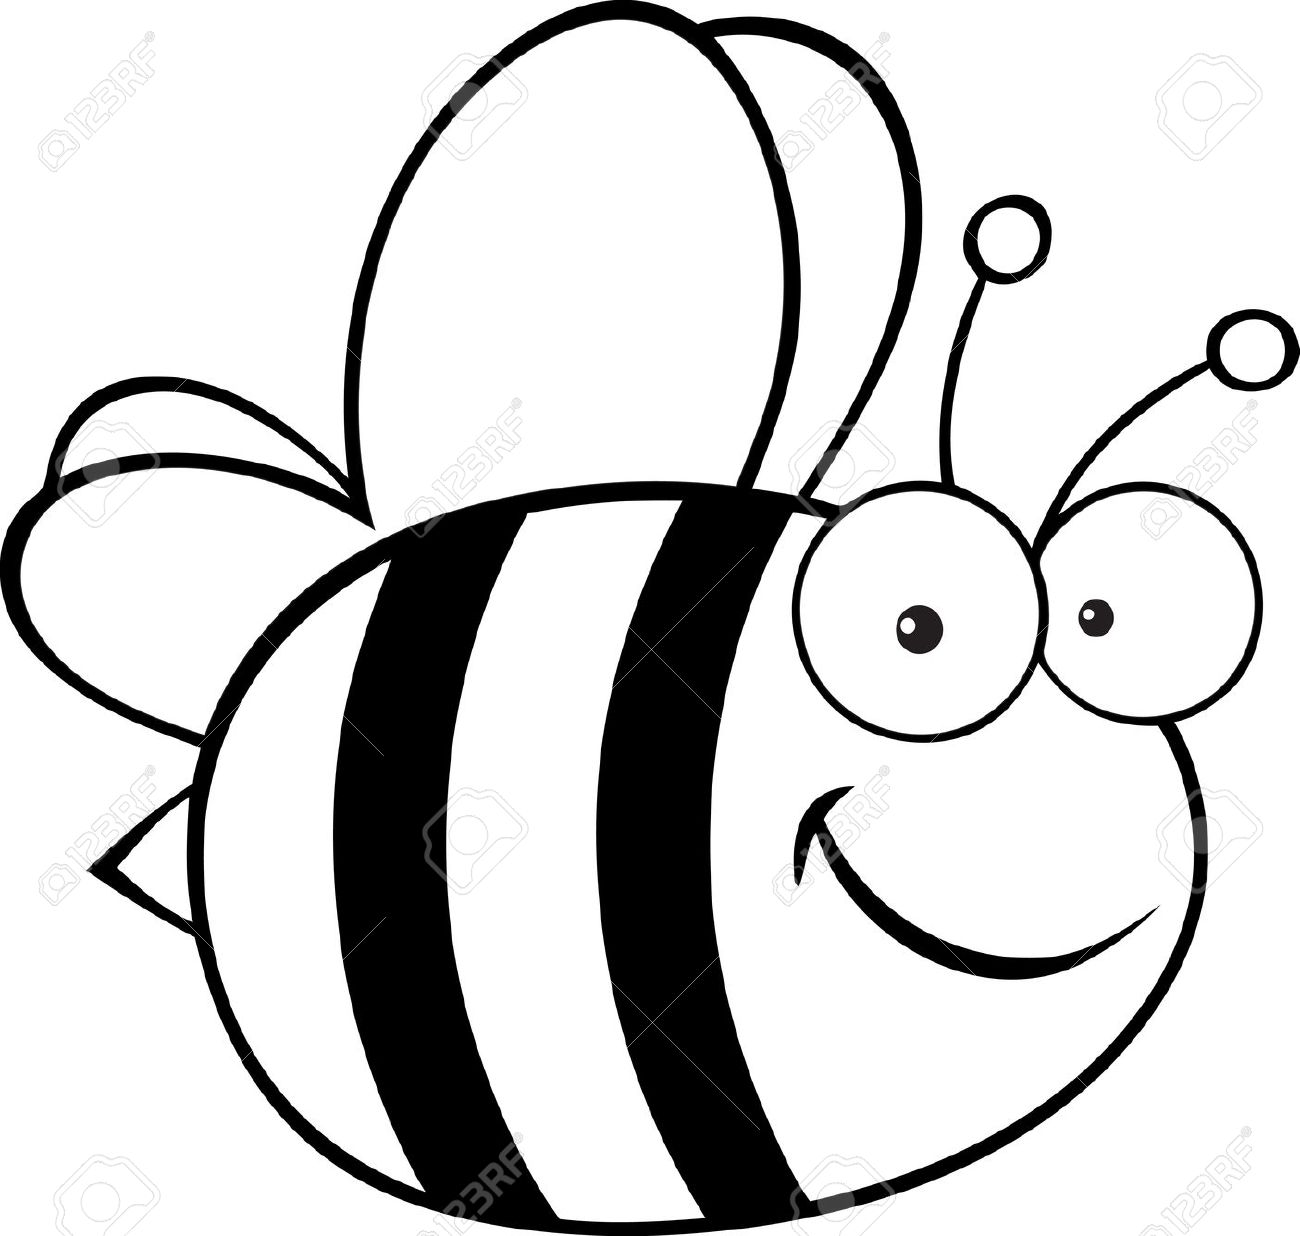 1300x1236 Bee Clipart Black And White